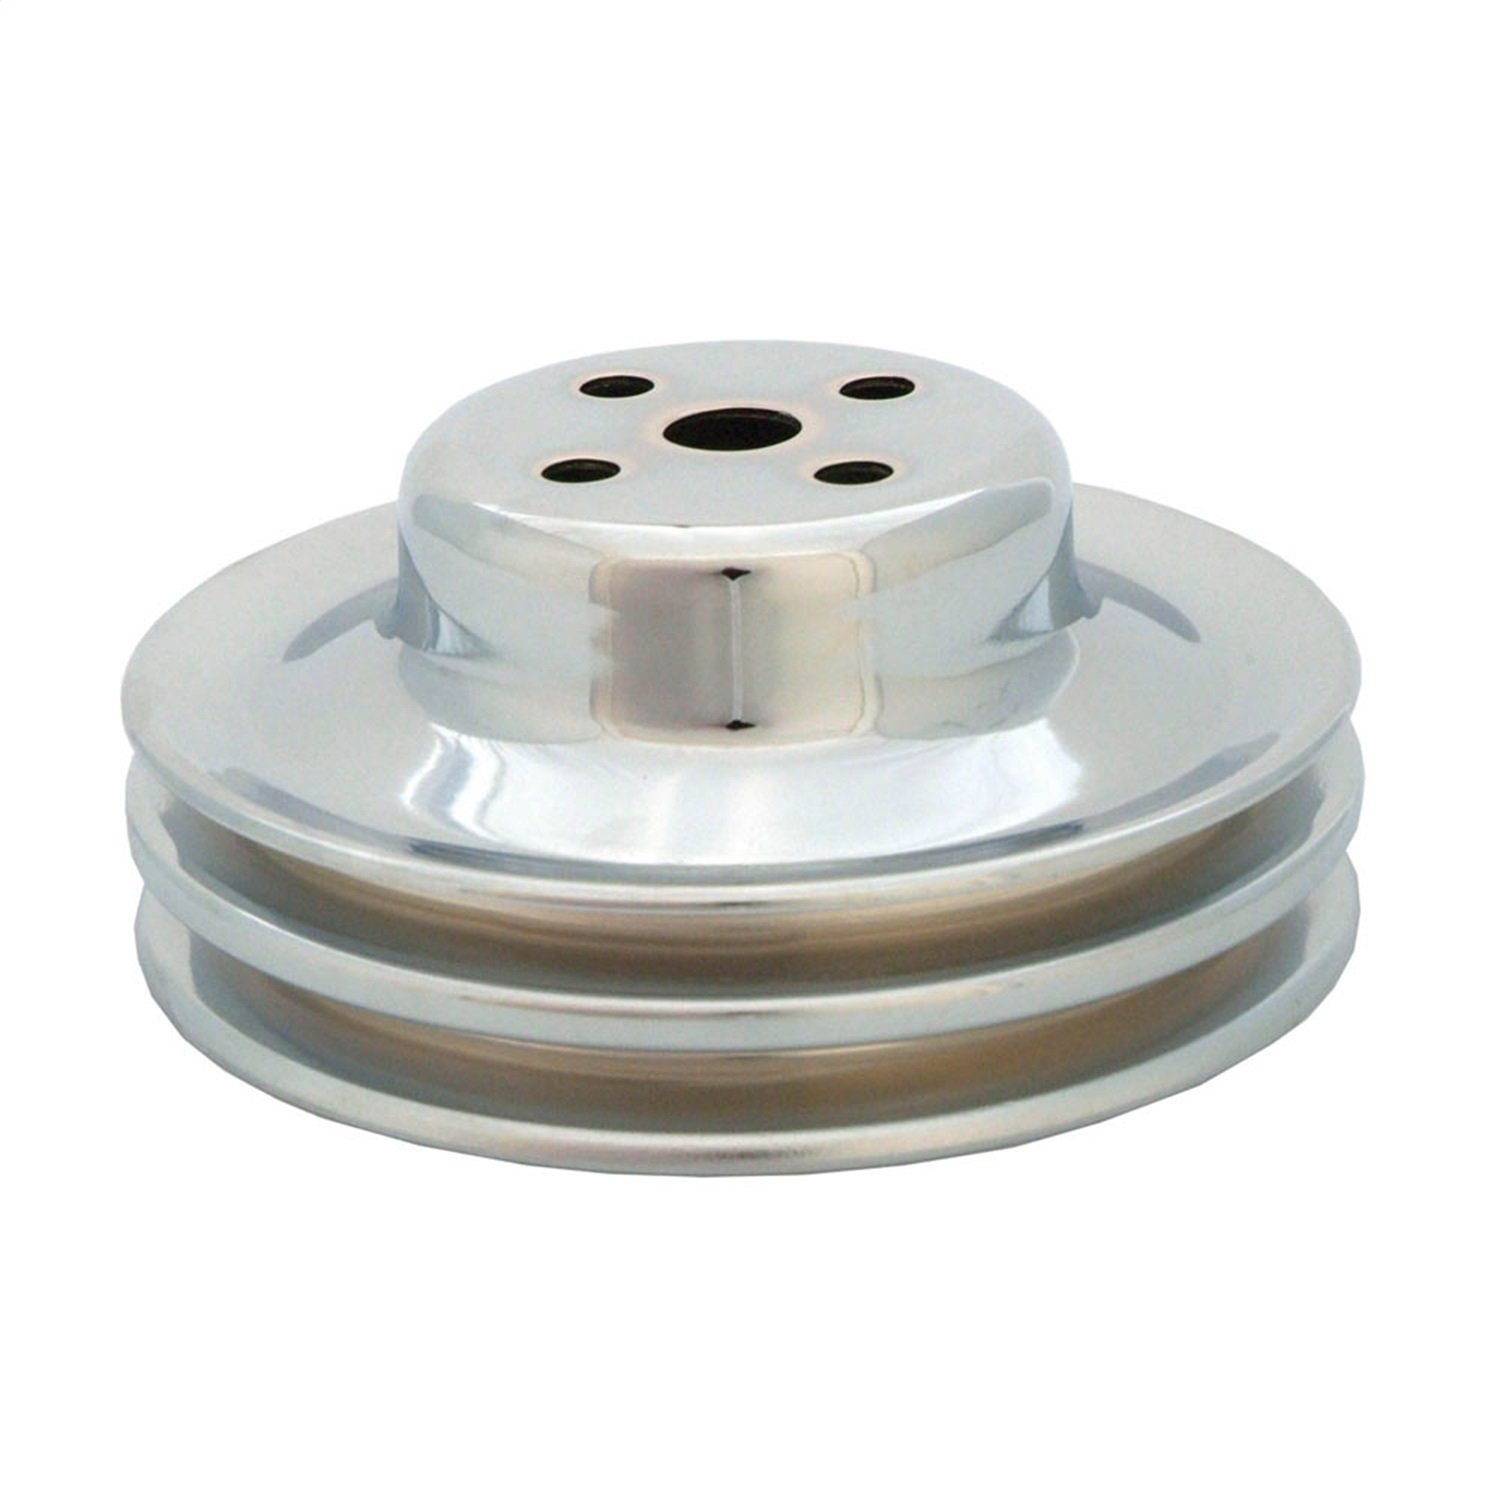 Spectre Performance 4494 Chrome Double Belt Water Pump Pulley for Ford 289 by Spectre Performance